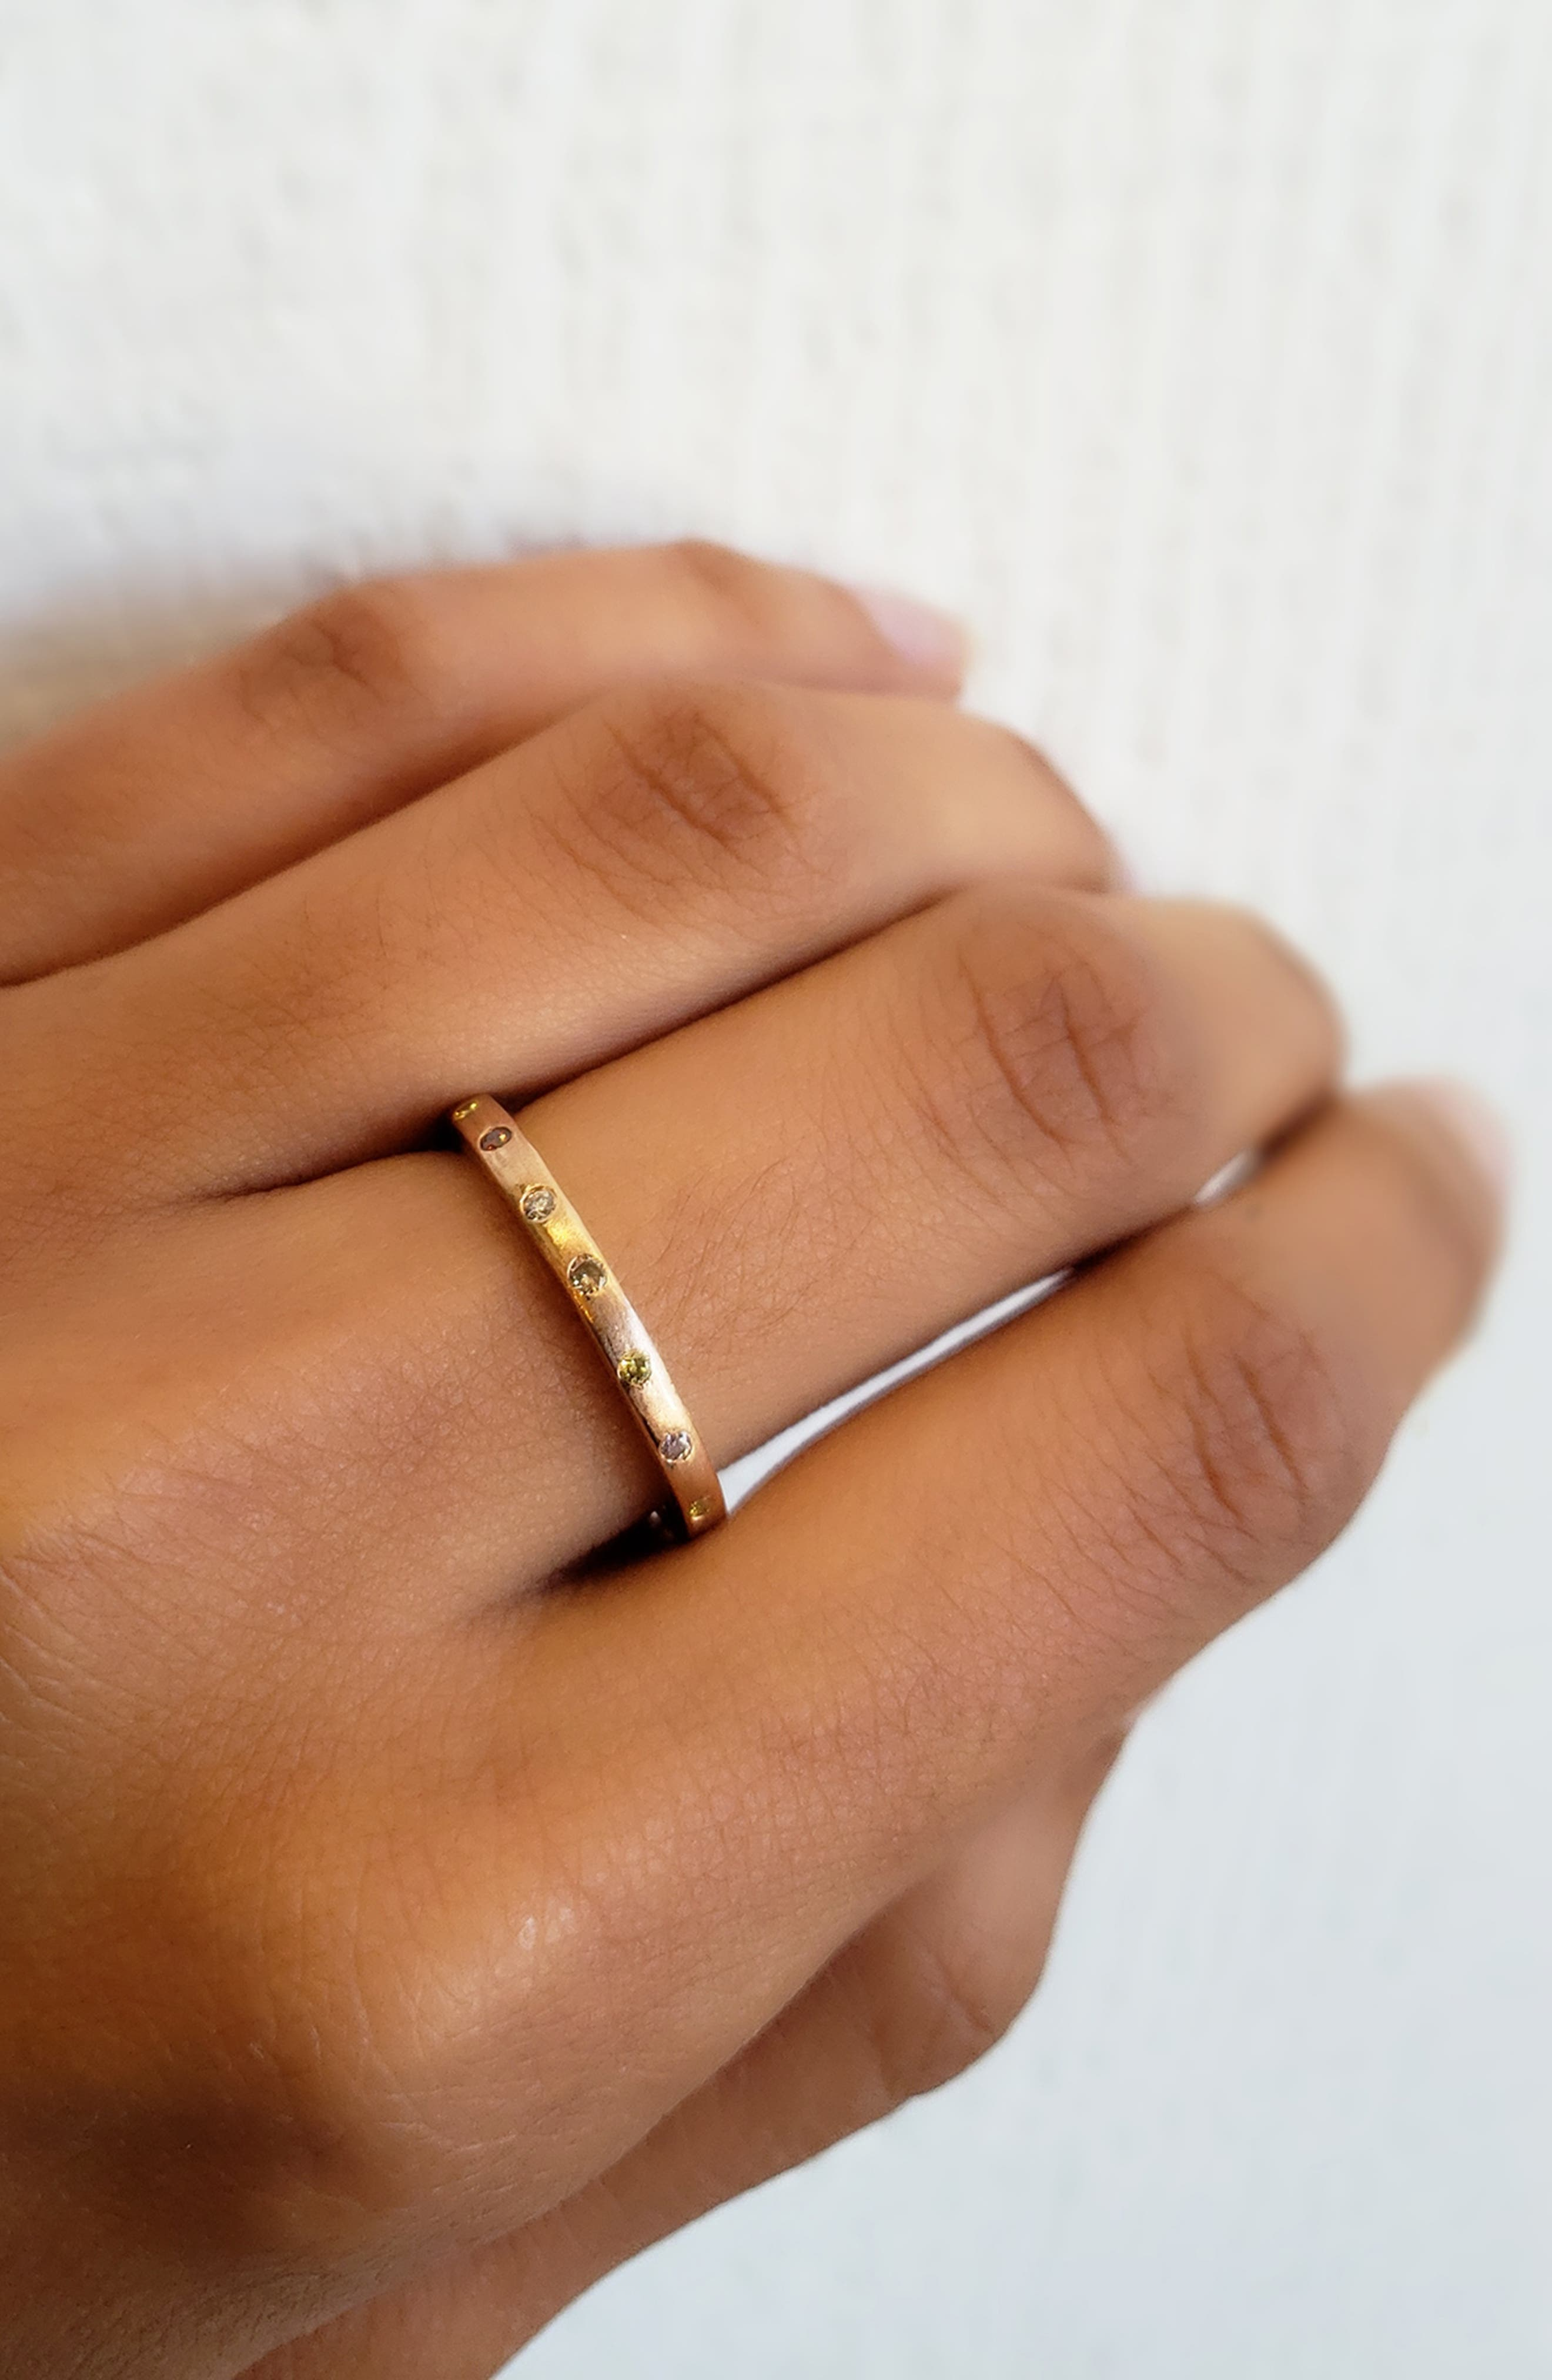 Dunes Diamond Stacking Band Ring,                             Alternate thumbnail 2, color,                             ROSE GOLD/ DIAMOND